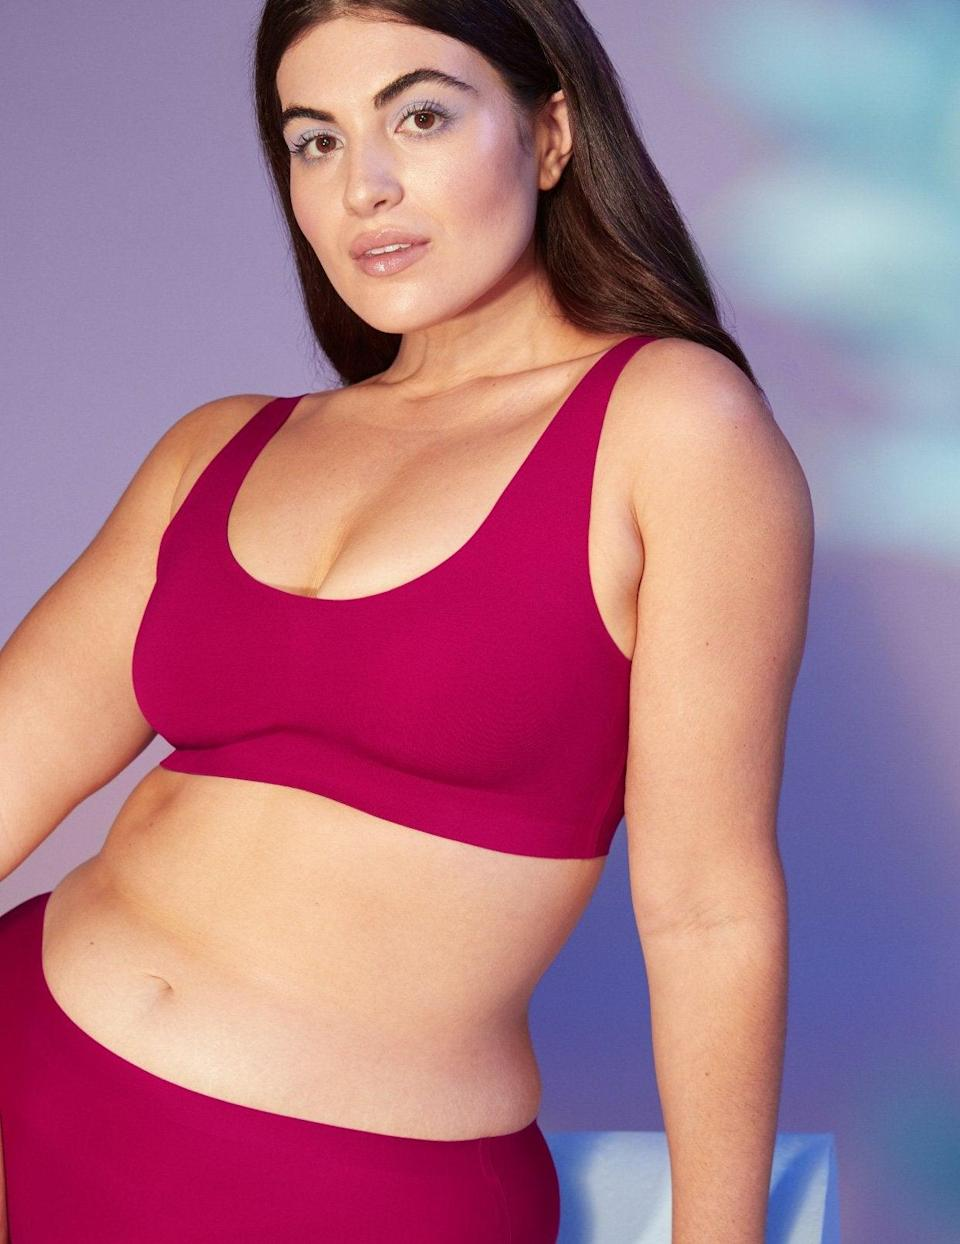 """<h2>Knix LuxeLift Pullover Bra</h2><br><strong>Size range: </strong>XXS - XXXL+<br>This completely hardware-free pullover style is way more supportive than its super-smooth appearance lets on — it offers a comfortable lift for boobs up to size 44G.<br><br><br><strong>Knix</strong> LuxeLift Pullover Bra, $, available at <a href=""""https://go.skimresources.com/?id=30283X879131&url=https%3A%2F%2Fknix.com%2Fcollections%2Fbras%2Fproducts%2Fluxelift-pullover-bra-cerise"""" rel=""""nofollow noopener"""" target=""""_blank"""" data-ylk=""""slk:Knix"""" class=""""link rapid-noclick-resp"""">Knix</a>"""